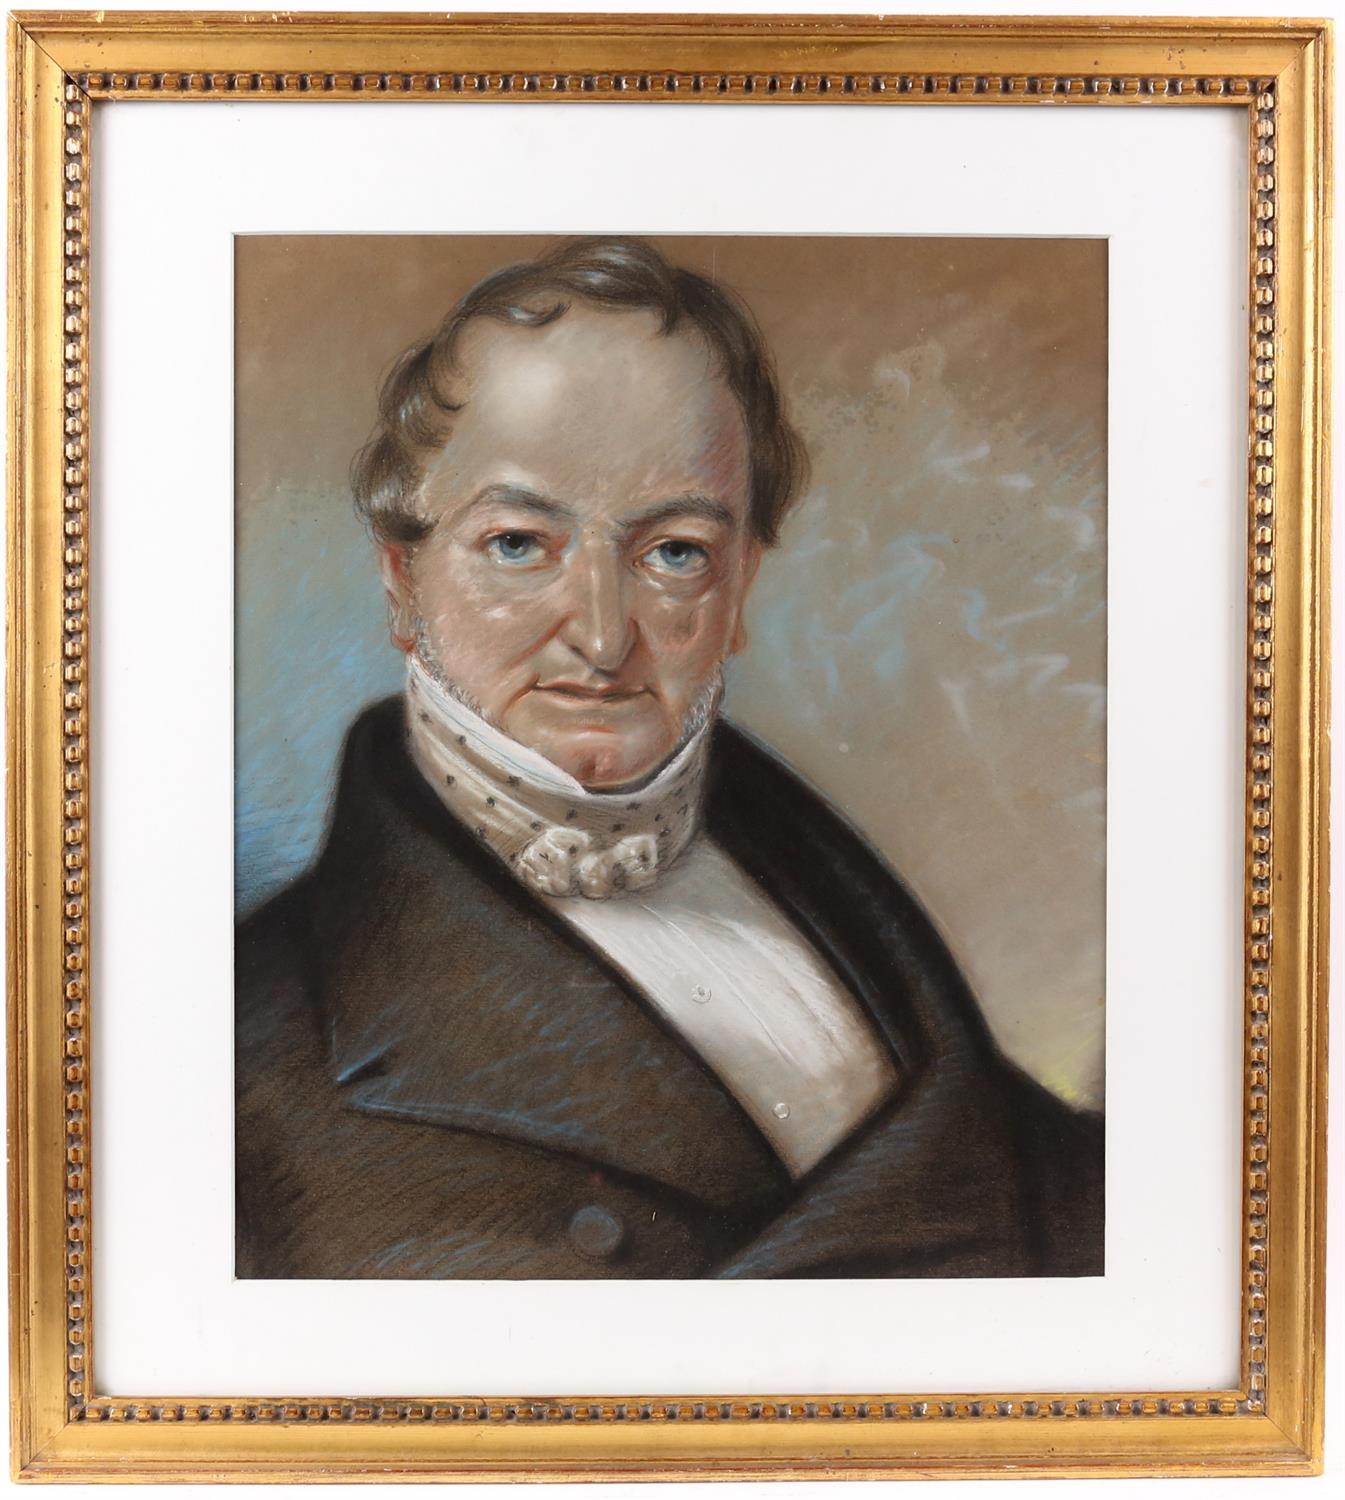 Portrait of a Gentleman, pastel. Circa 1820. 42 x 32.5cm. Framed and glazed. - Image 2 of 3